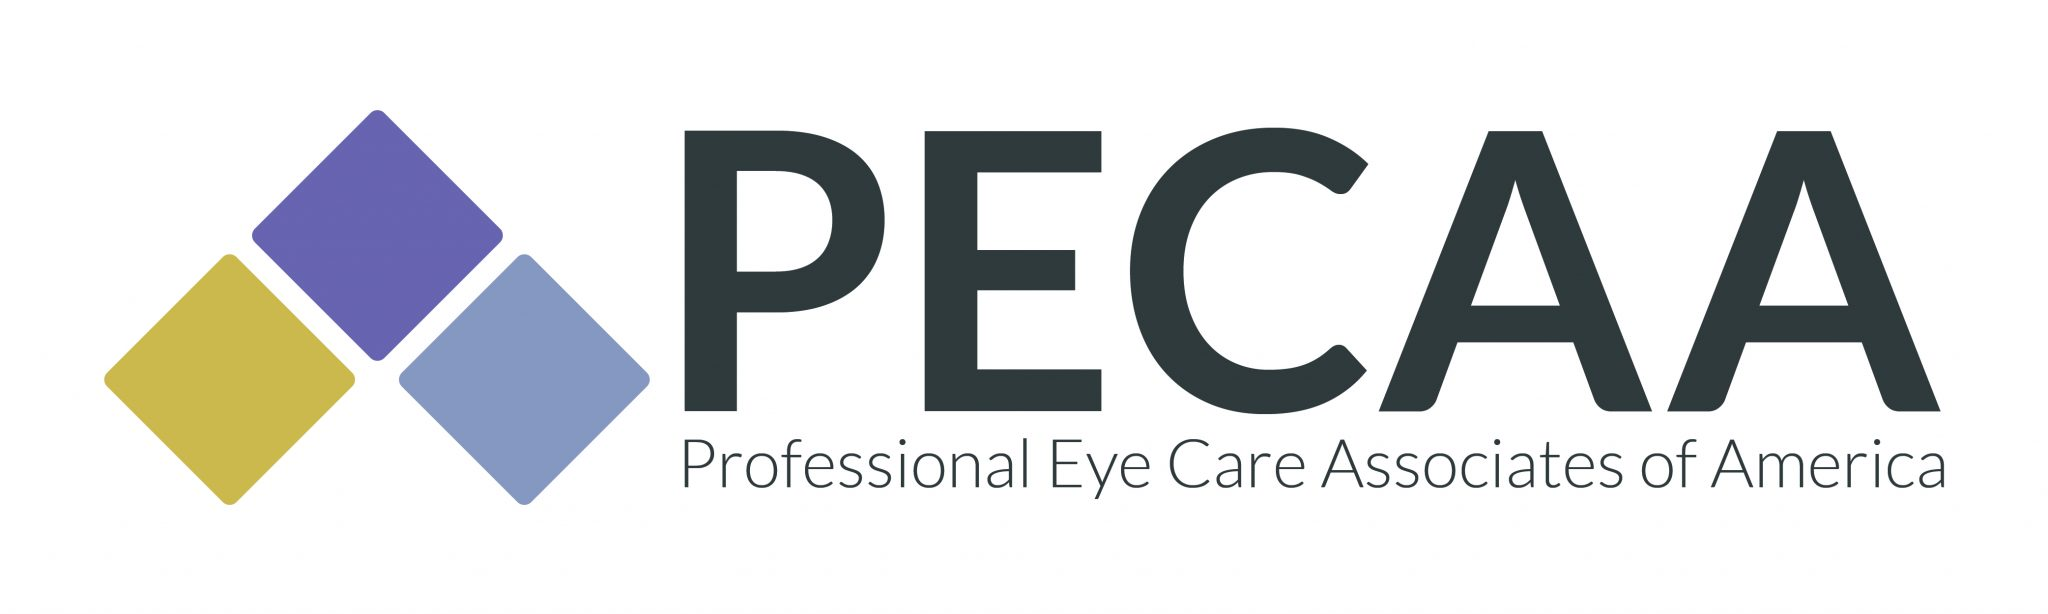 PECAA Launches Integrated Eye Care Initiative to Help ECPs Manage Through Health Care Reform